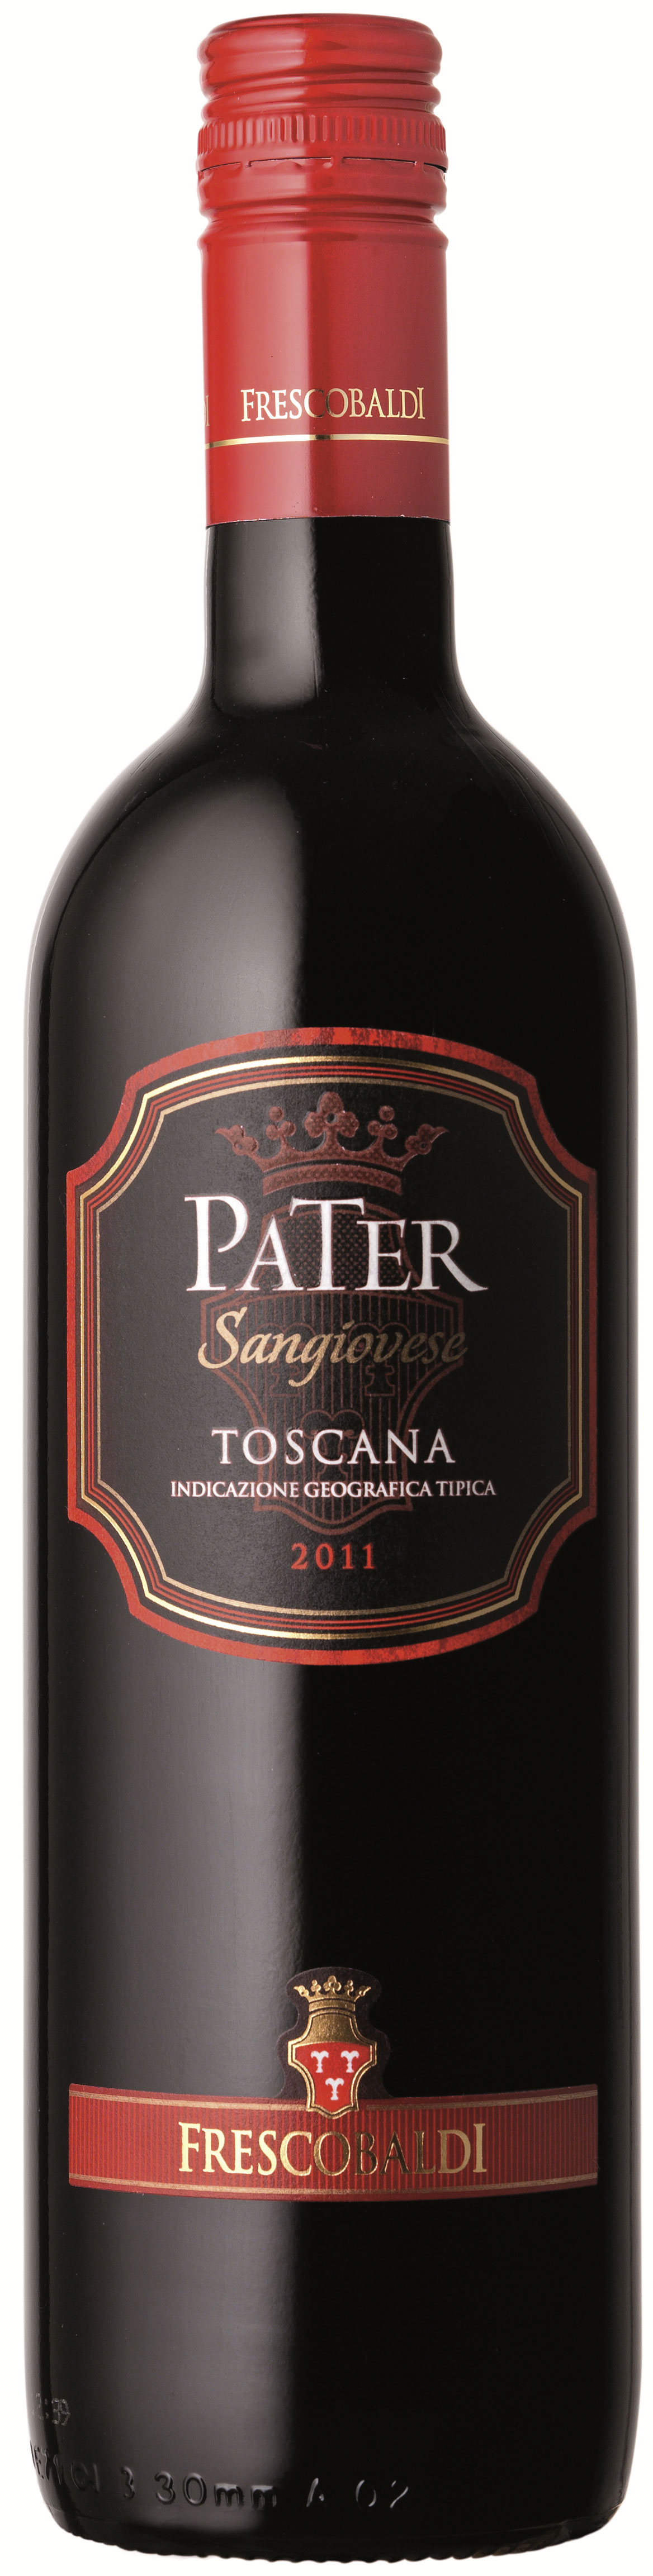 Pater Sangiovese Toscana IGT Frescobaldi 2014